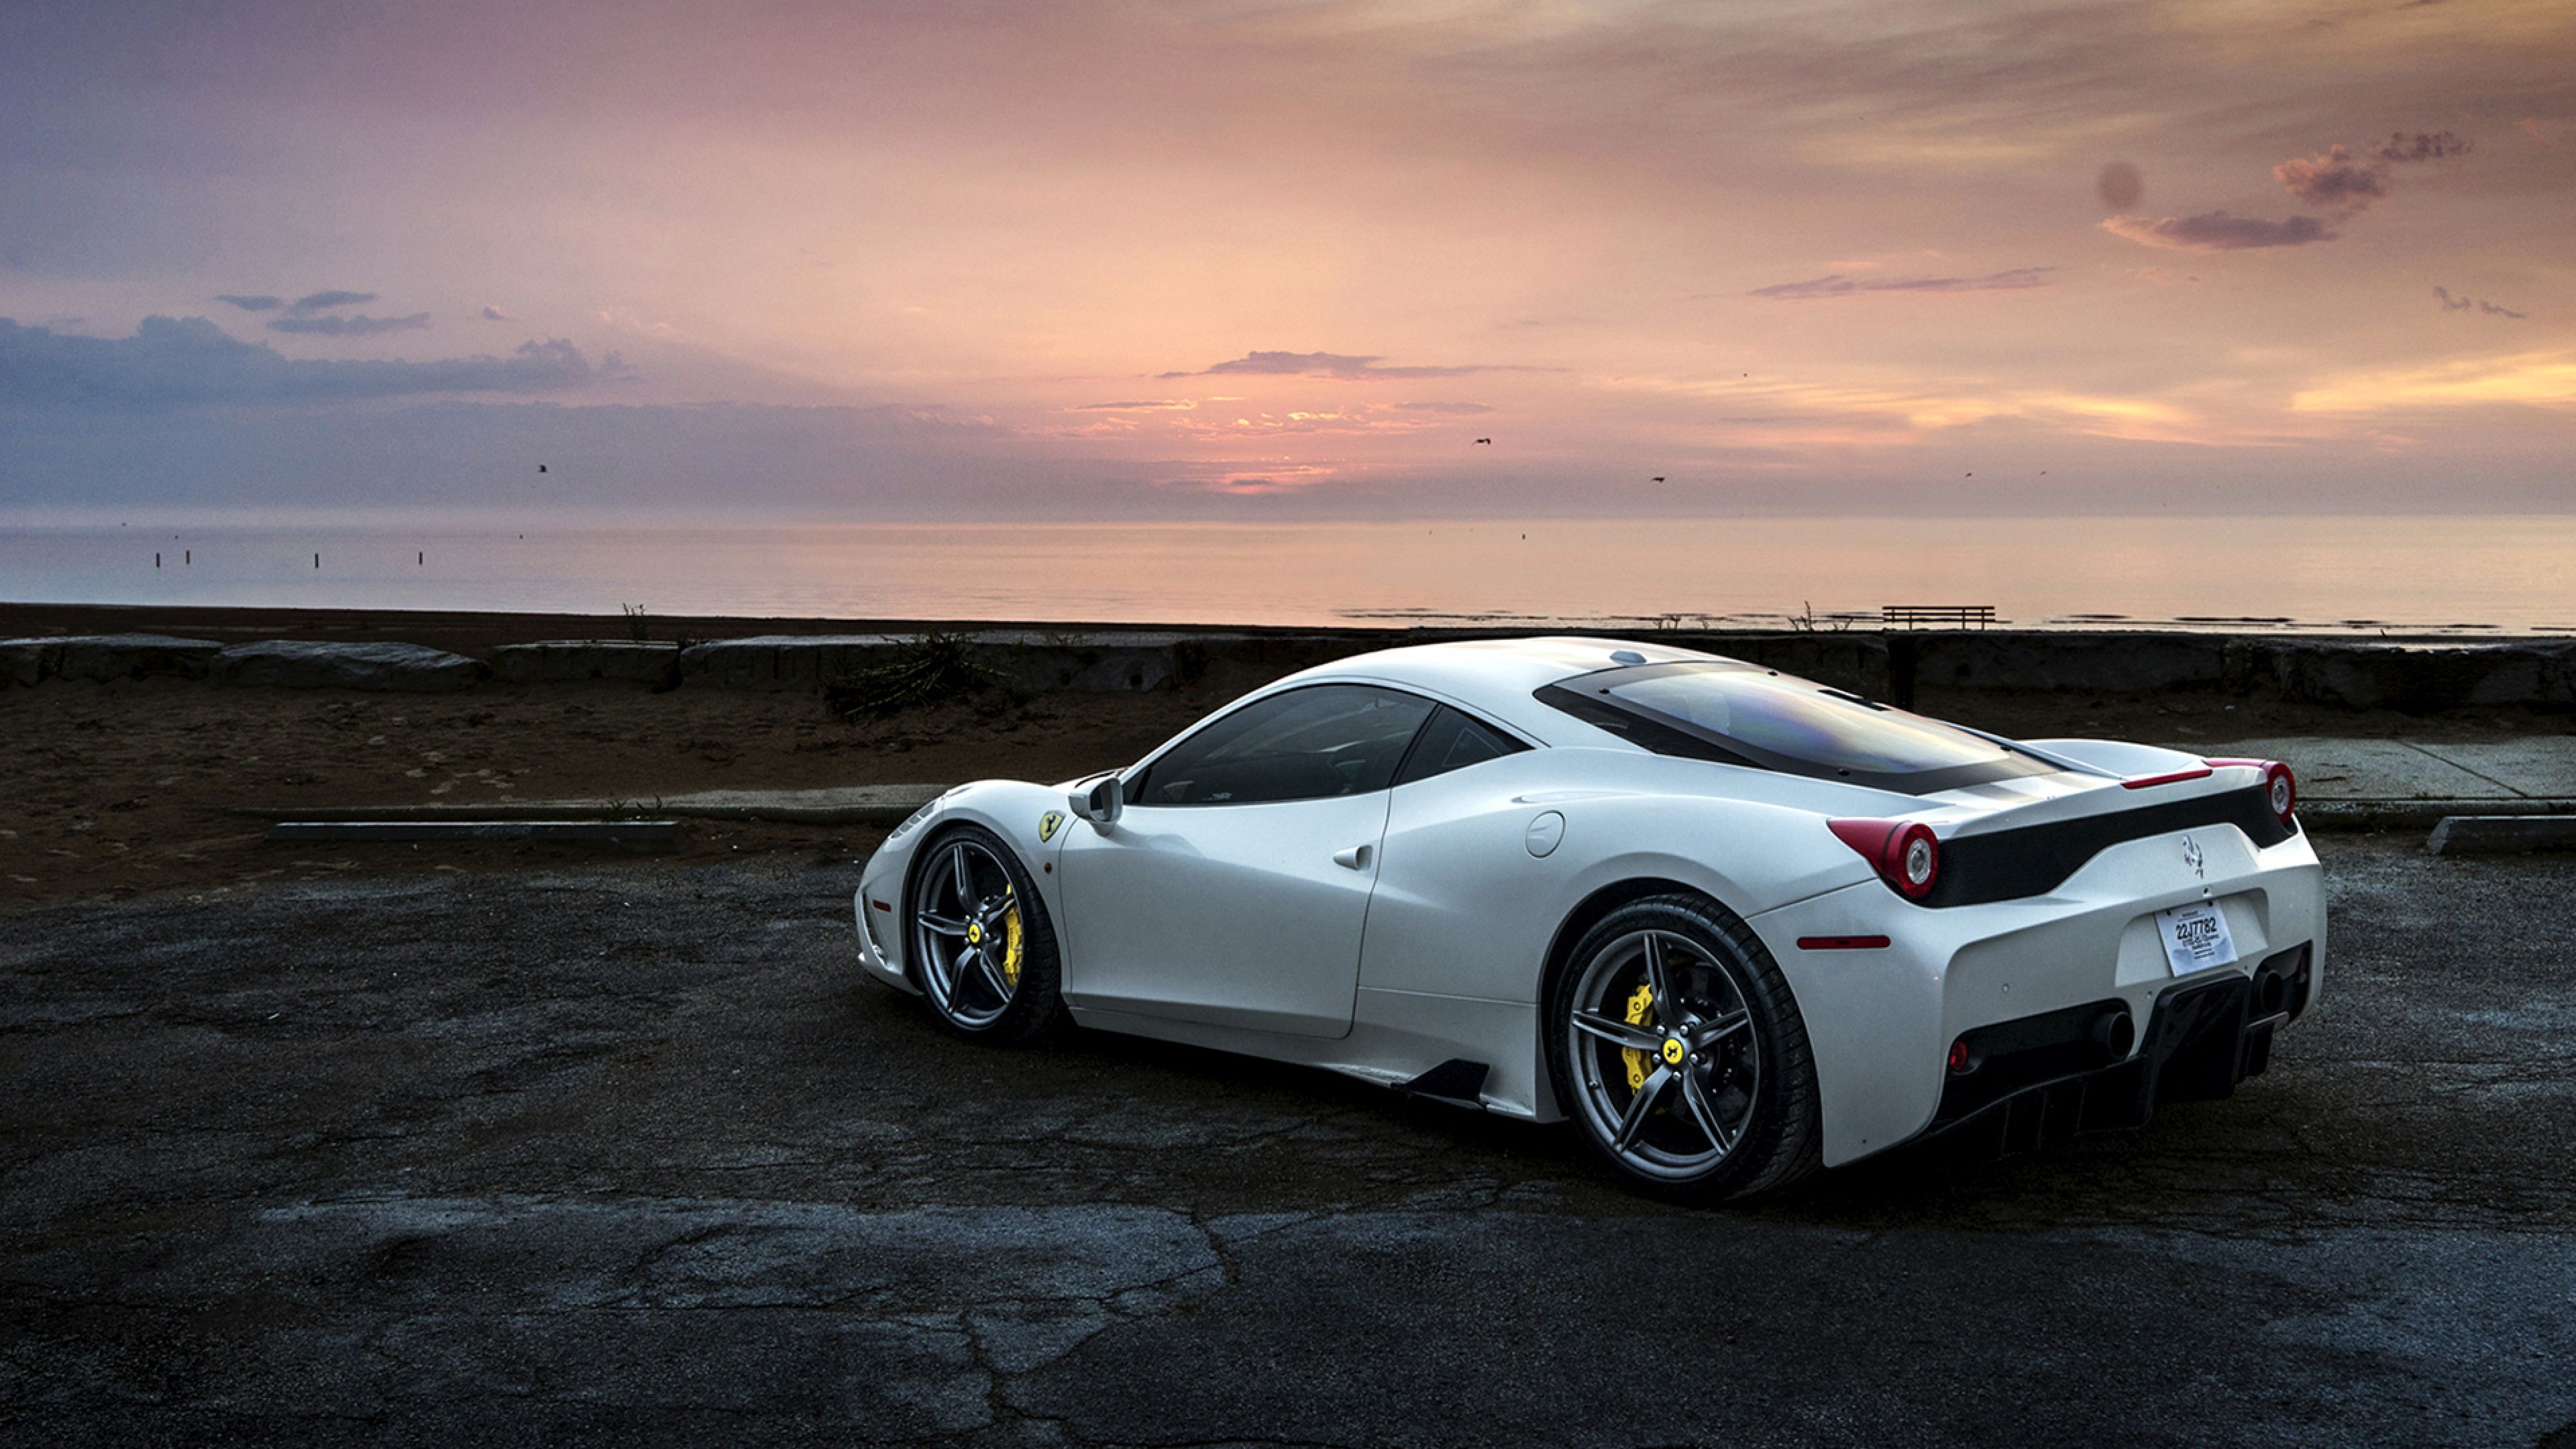 4k ferrari wallpaper, wallpapers ferrari